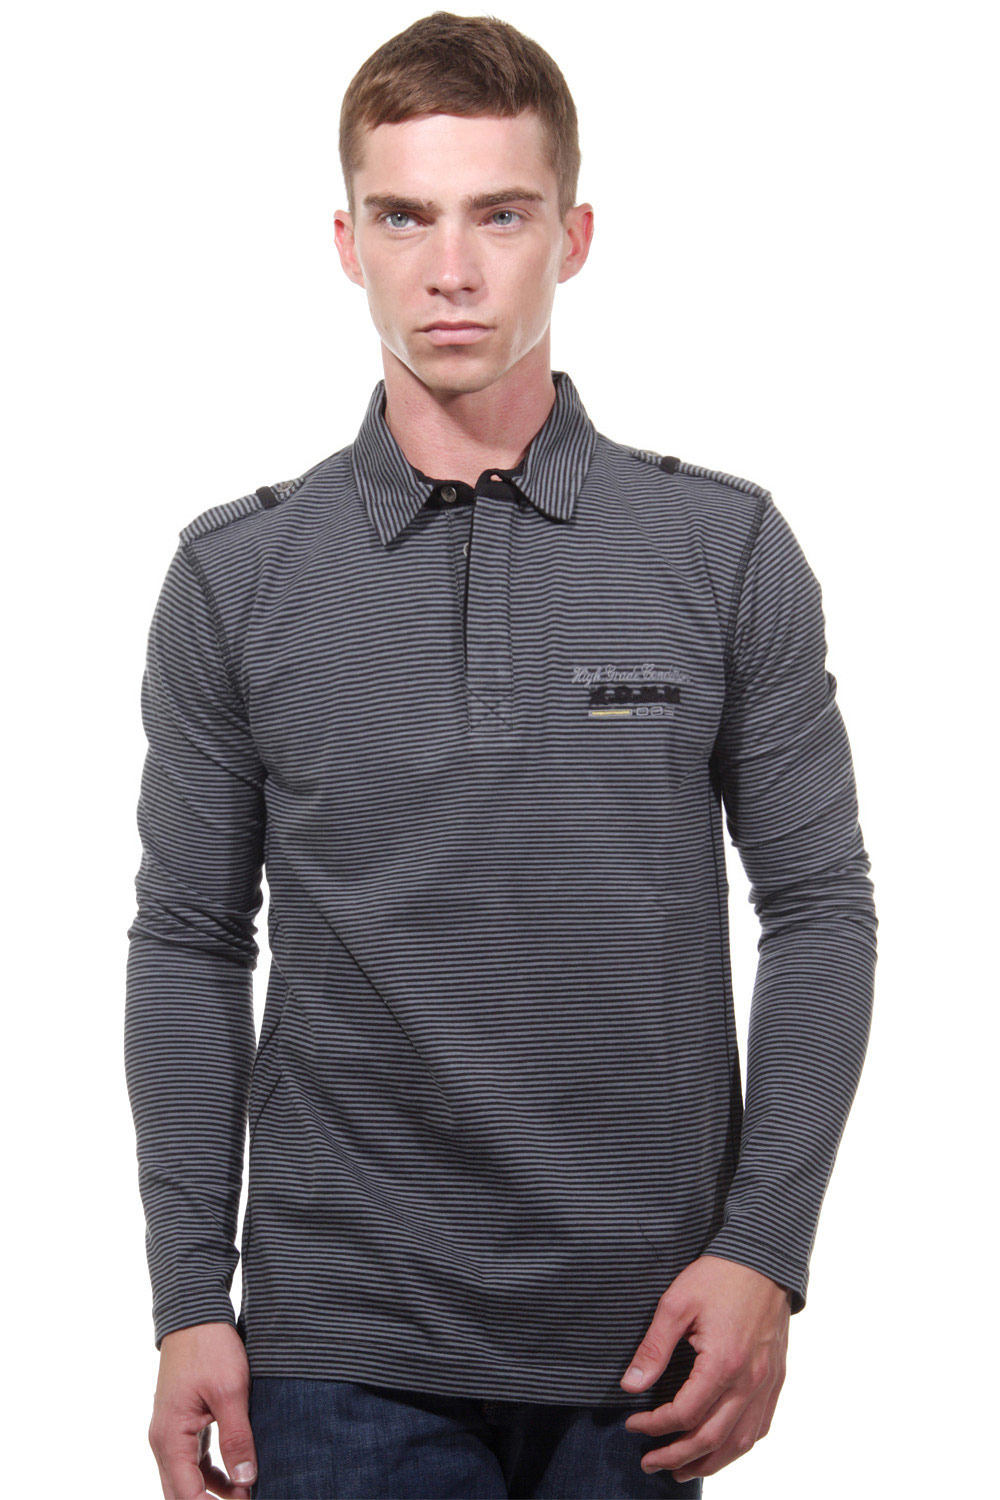 XINT polo long sleeve top slim fit at oboy.com